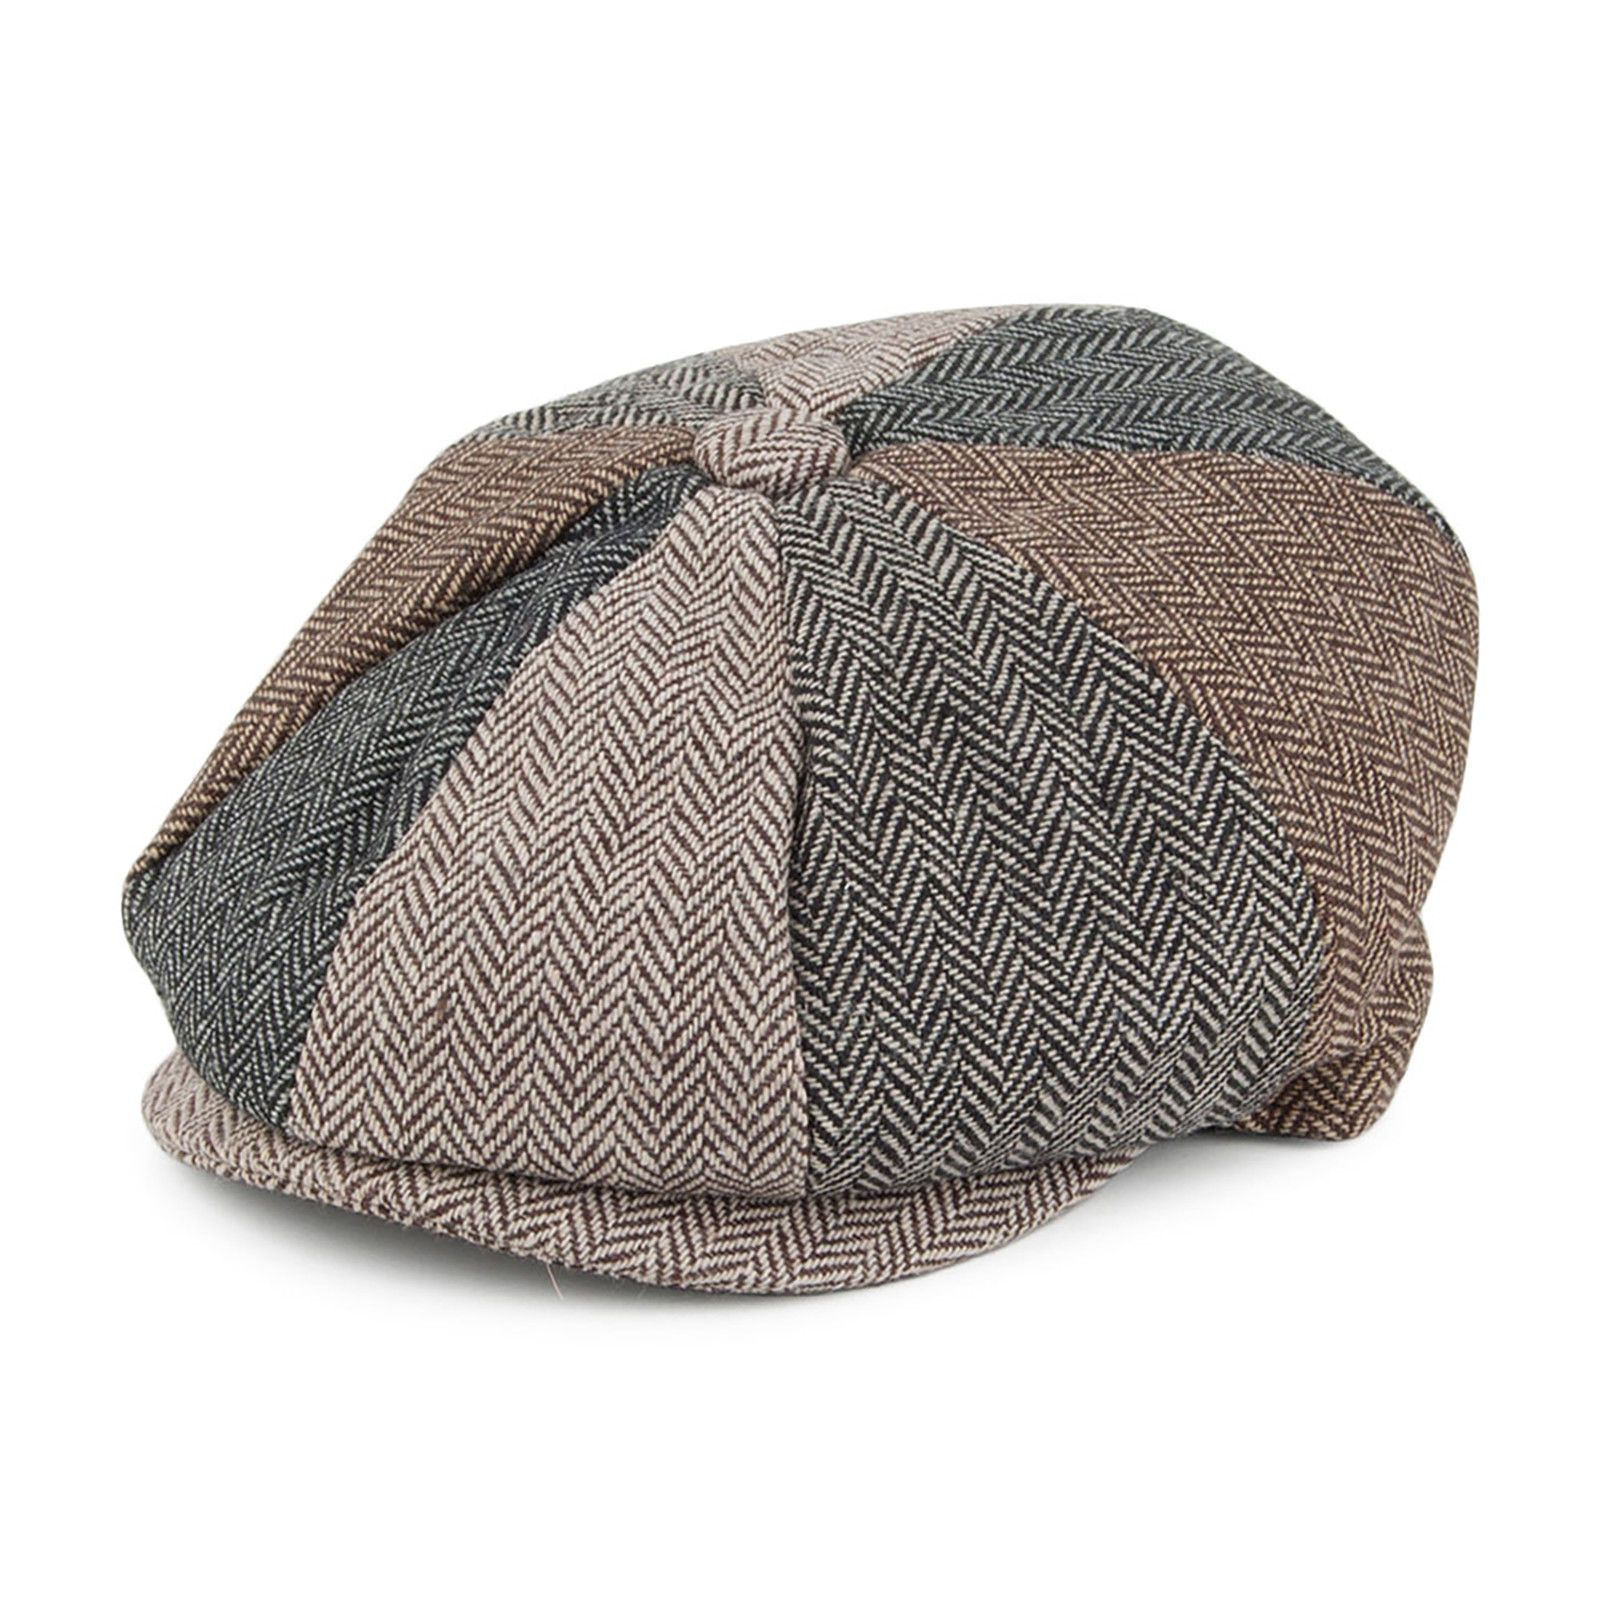 aa5a7e88794 Other Vintage Clothing 91247  Jaxon And James Kids Herringbone Multipatch Newsboy  Cap -  BUY IT NOW ONLY   13.49 on eBay!